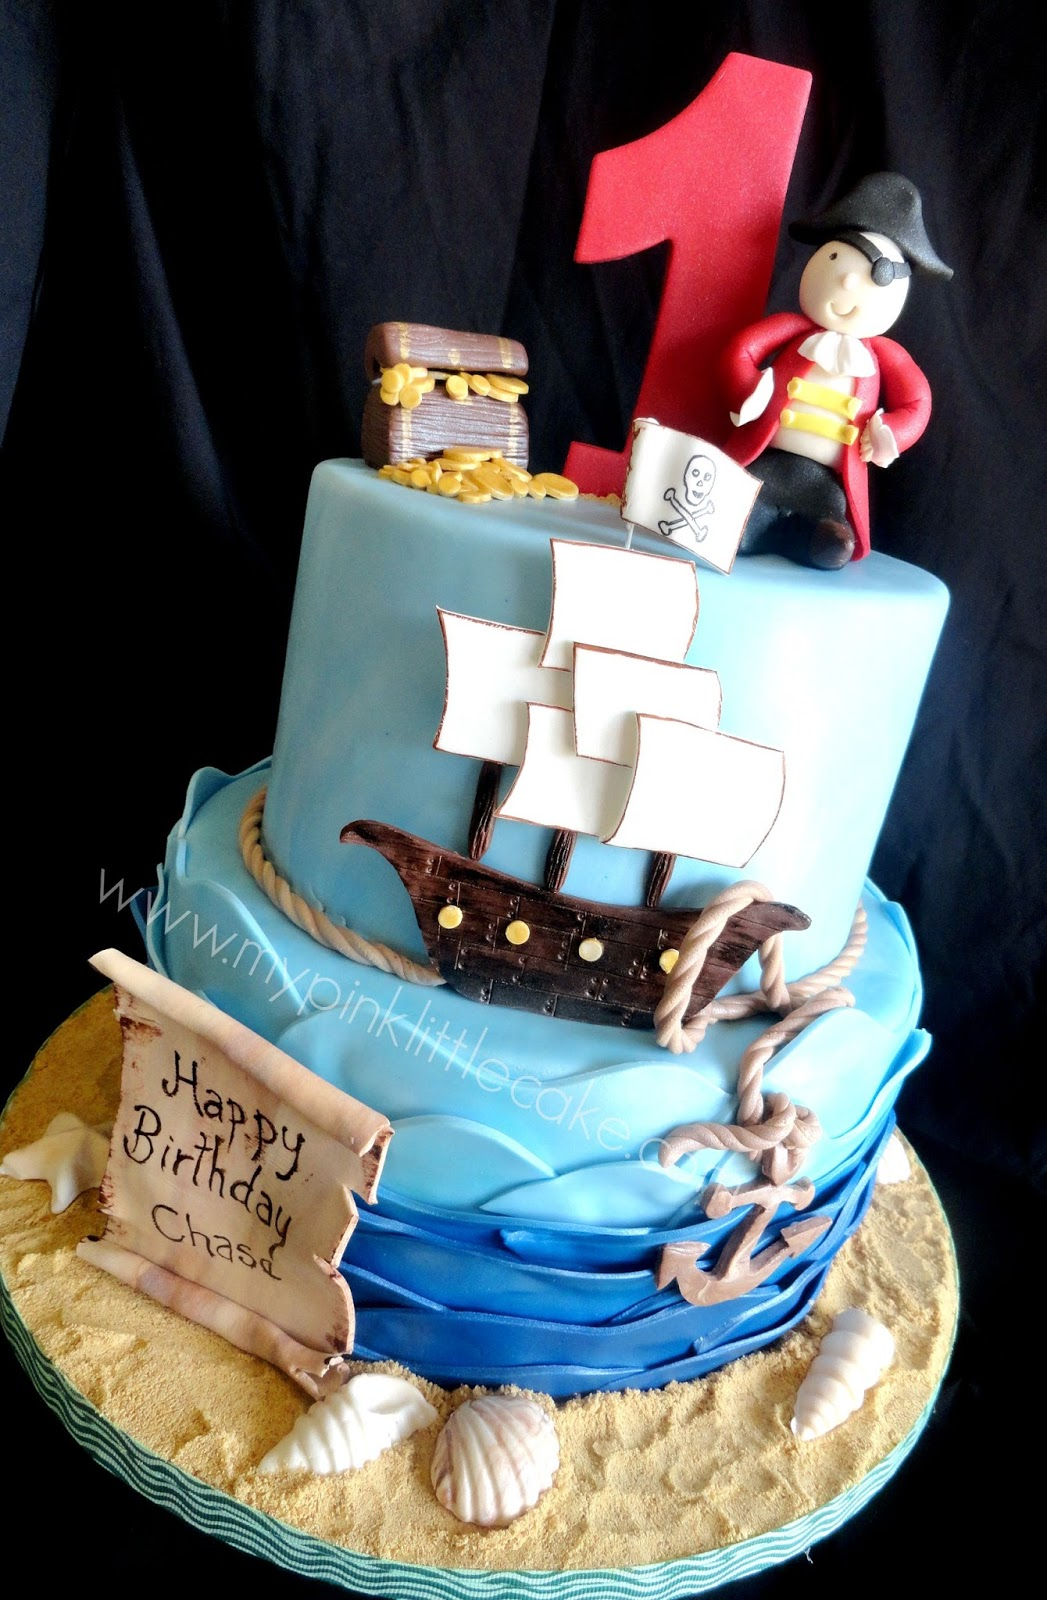 This Fun Pirate Theme Birthday Cake Was Made For A Little Boy Turning 1 He Enjoys Show In TV And His Mom Thought The Perfect